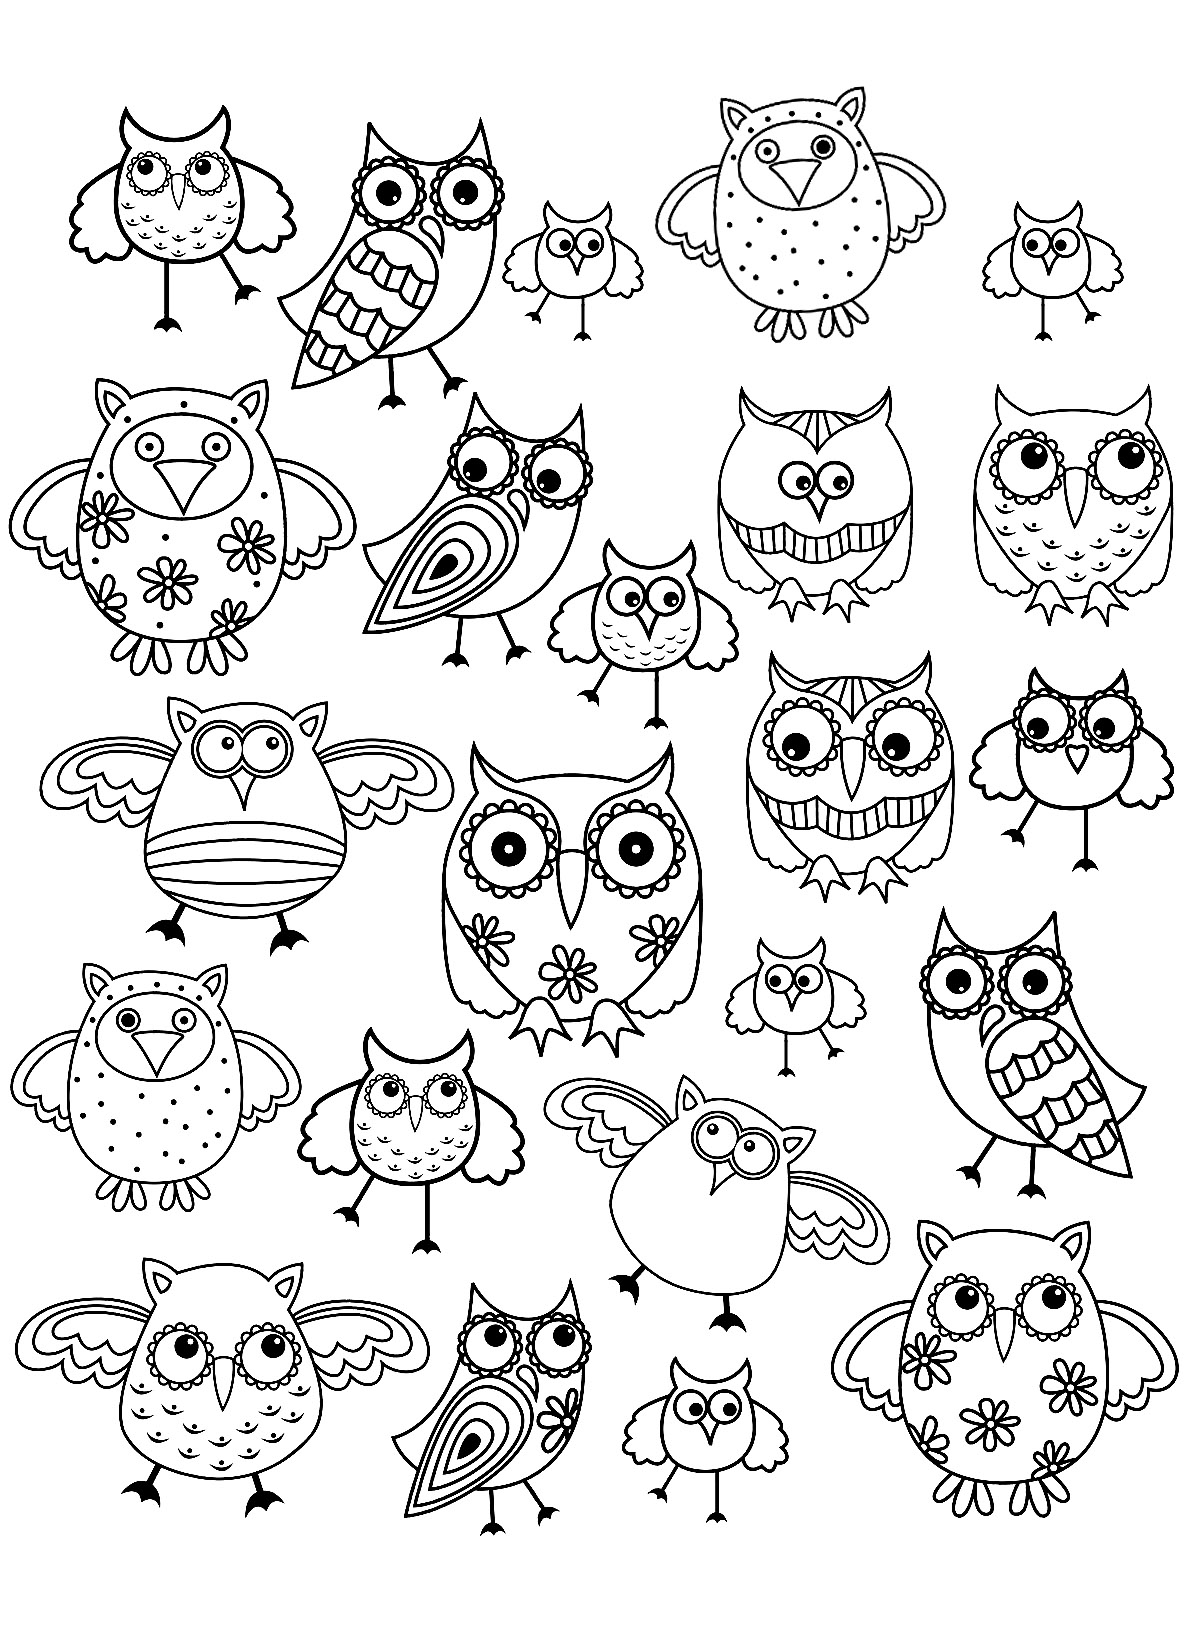 Owls - Coloring pages for adults